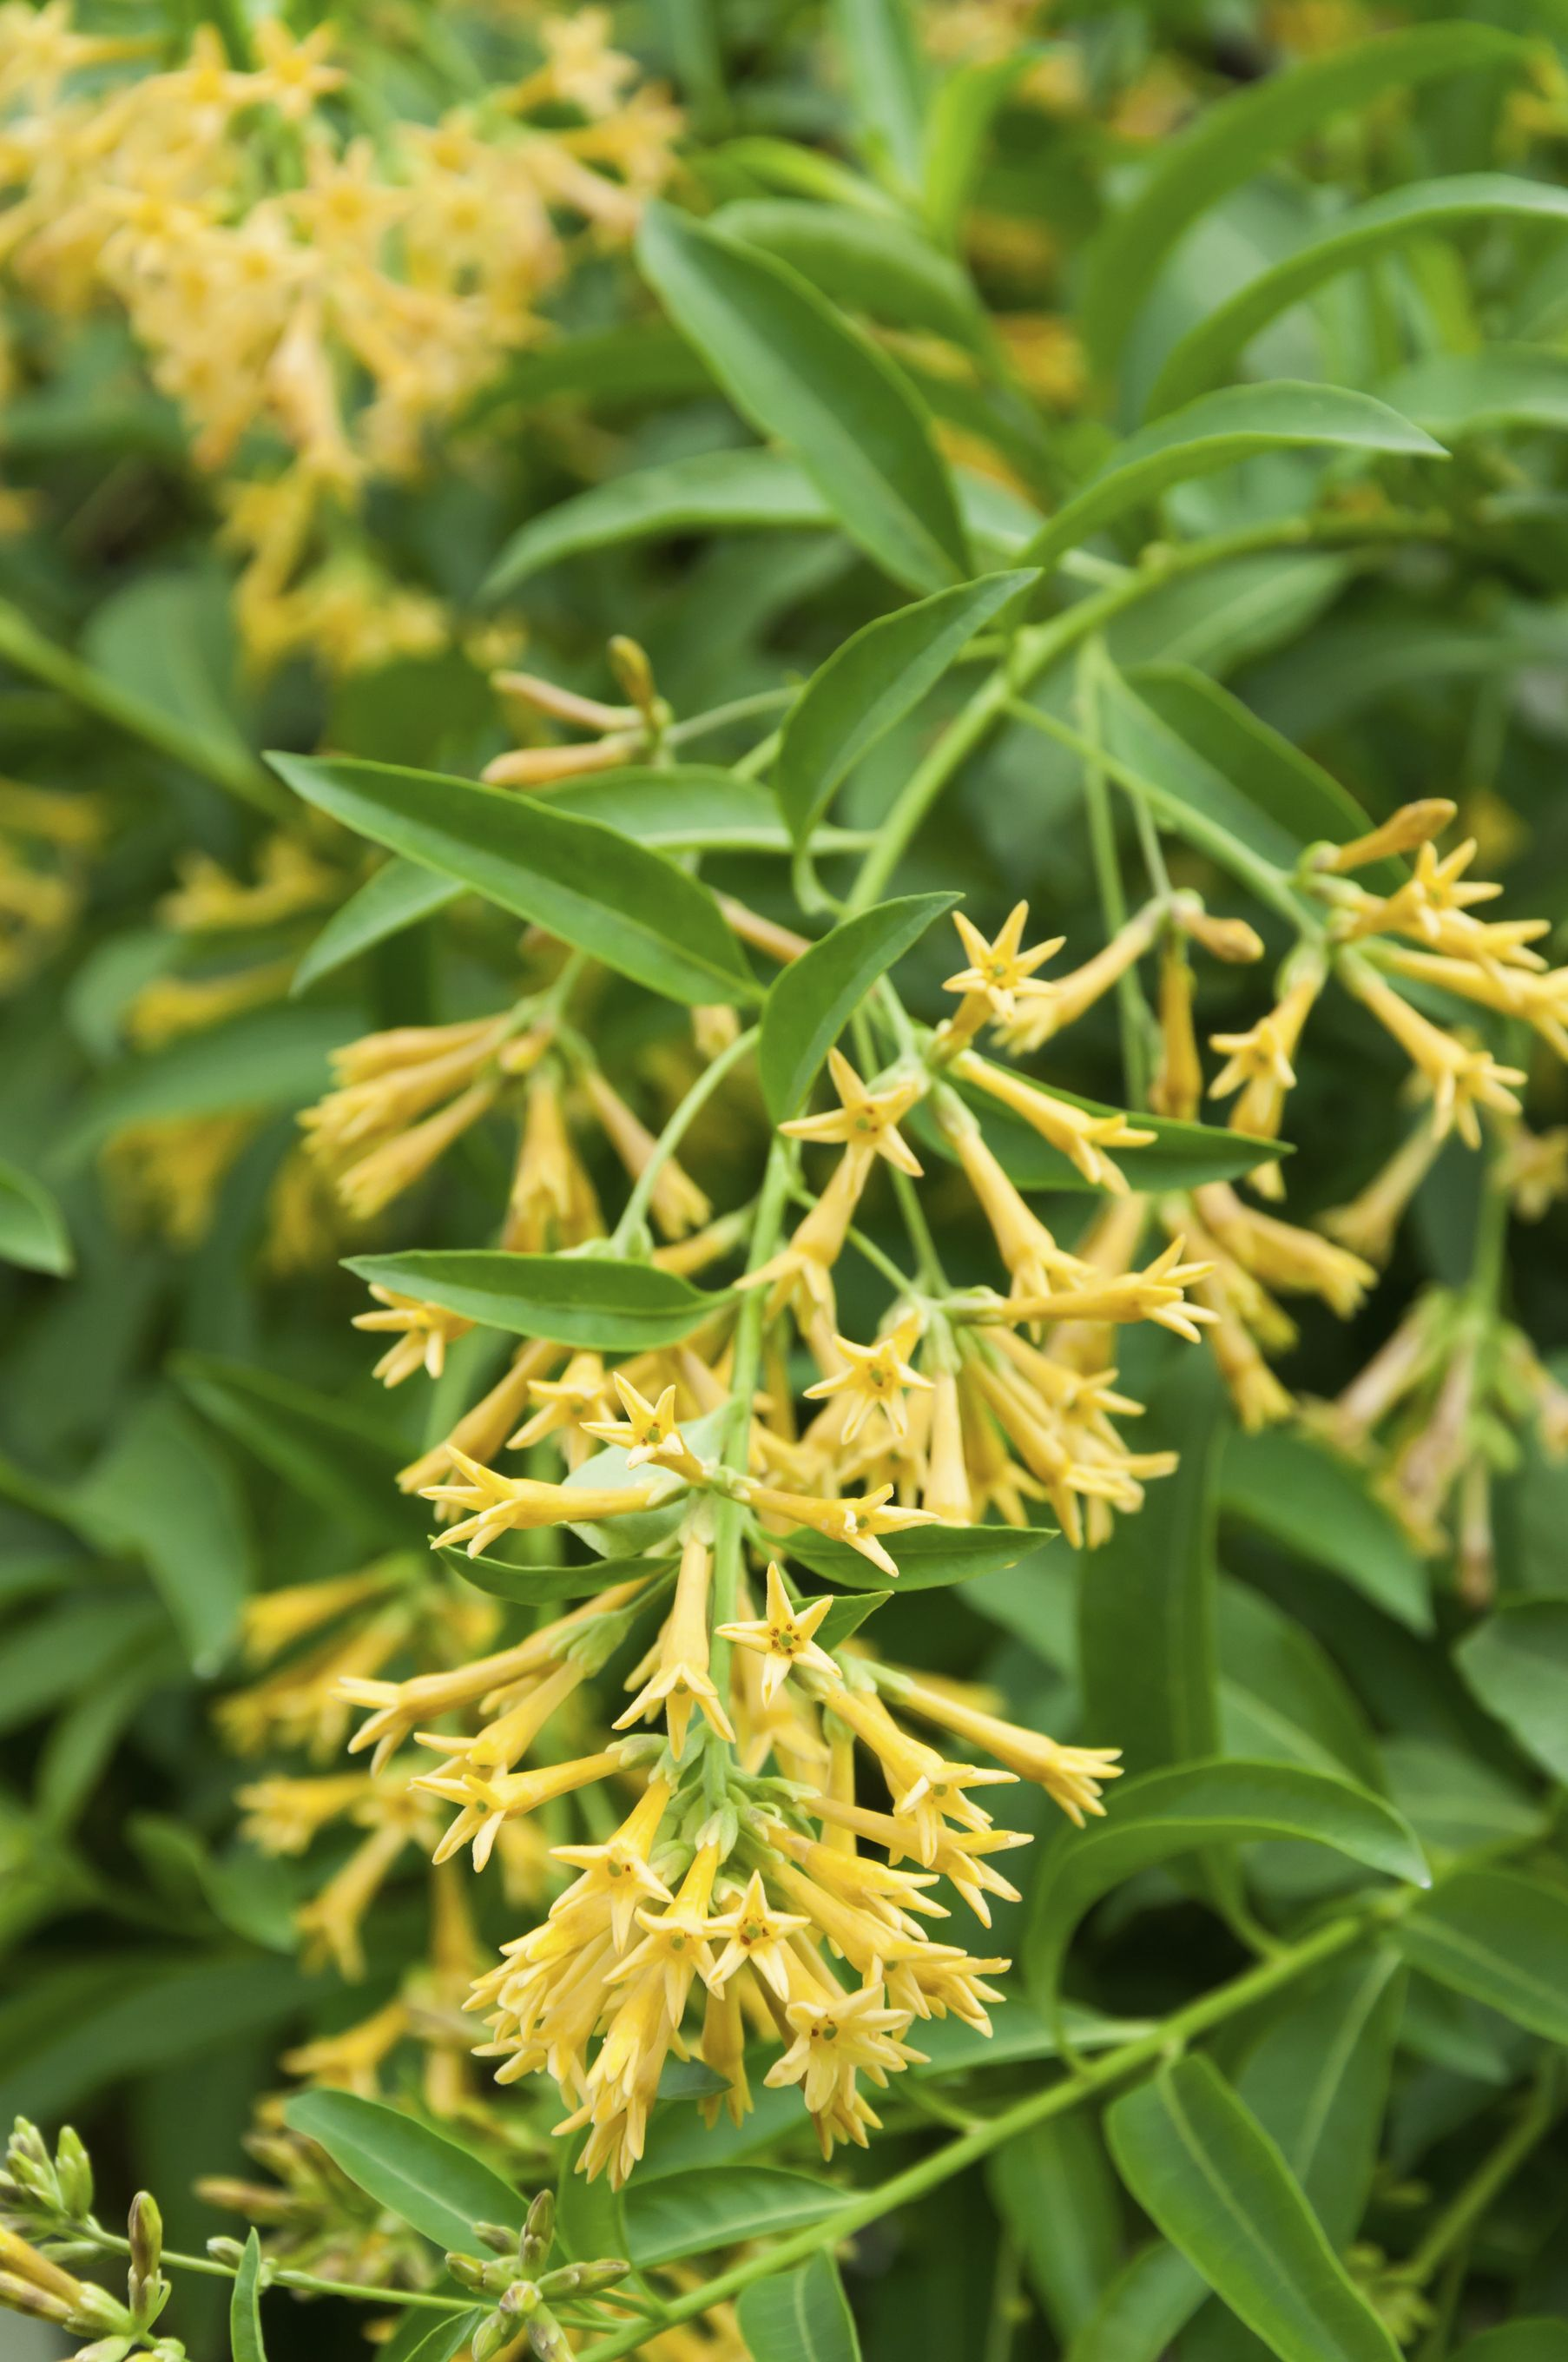 Create a scented patio z 8 11 plants gardens and monrovia plants when jasmine has wrapped up blooming night blooming jessamine comes into flower scenting the izmirmasajfo Image collections